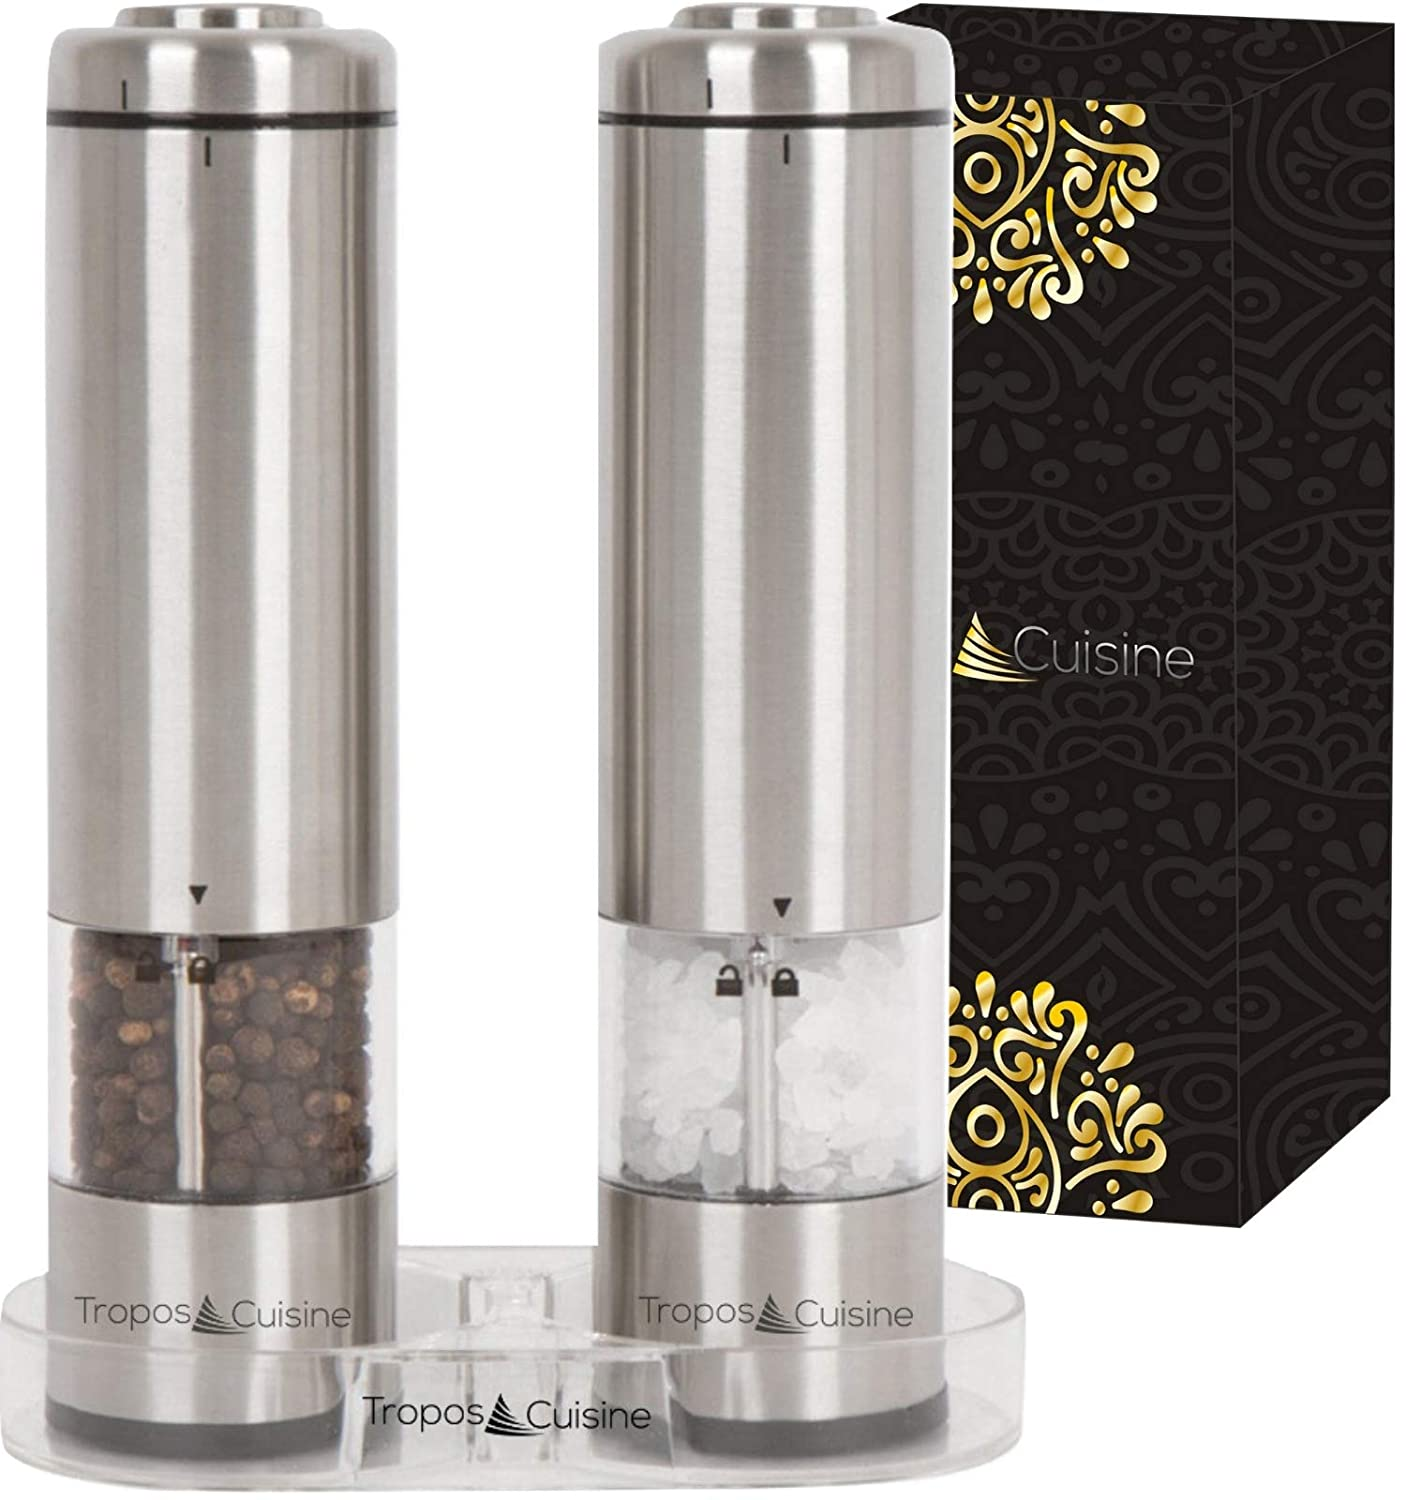 Battery Operated Salt and Pepper Grinder Set by TroposCuisine - 2 Tall Electric Stainless Steel Mills with Mill Rest - LED Light - Adjustable Coarseness Ceramic Grinders Shakers